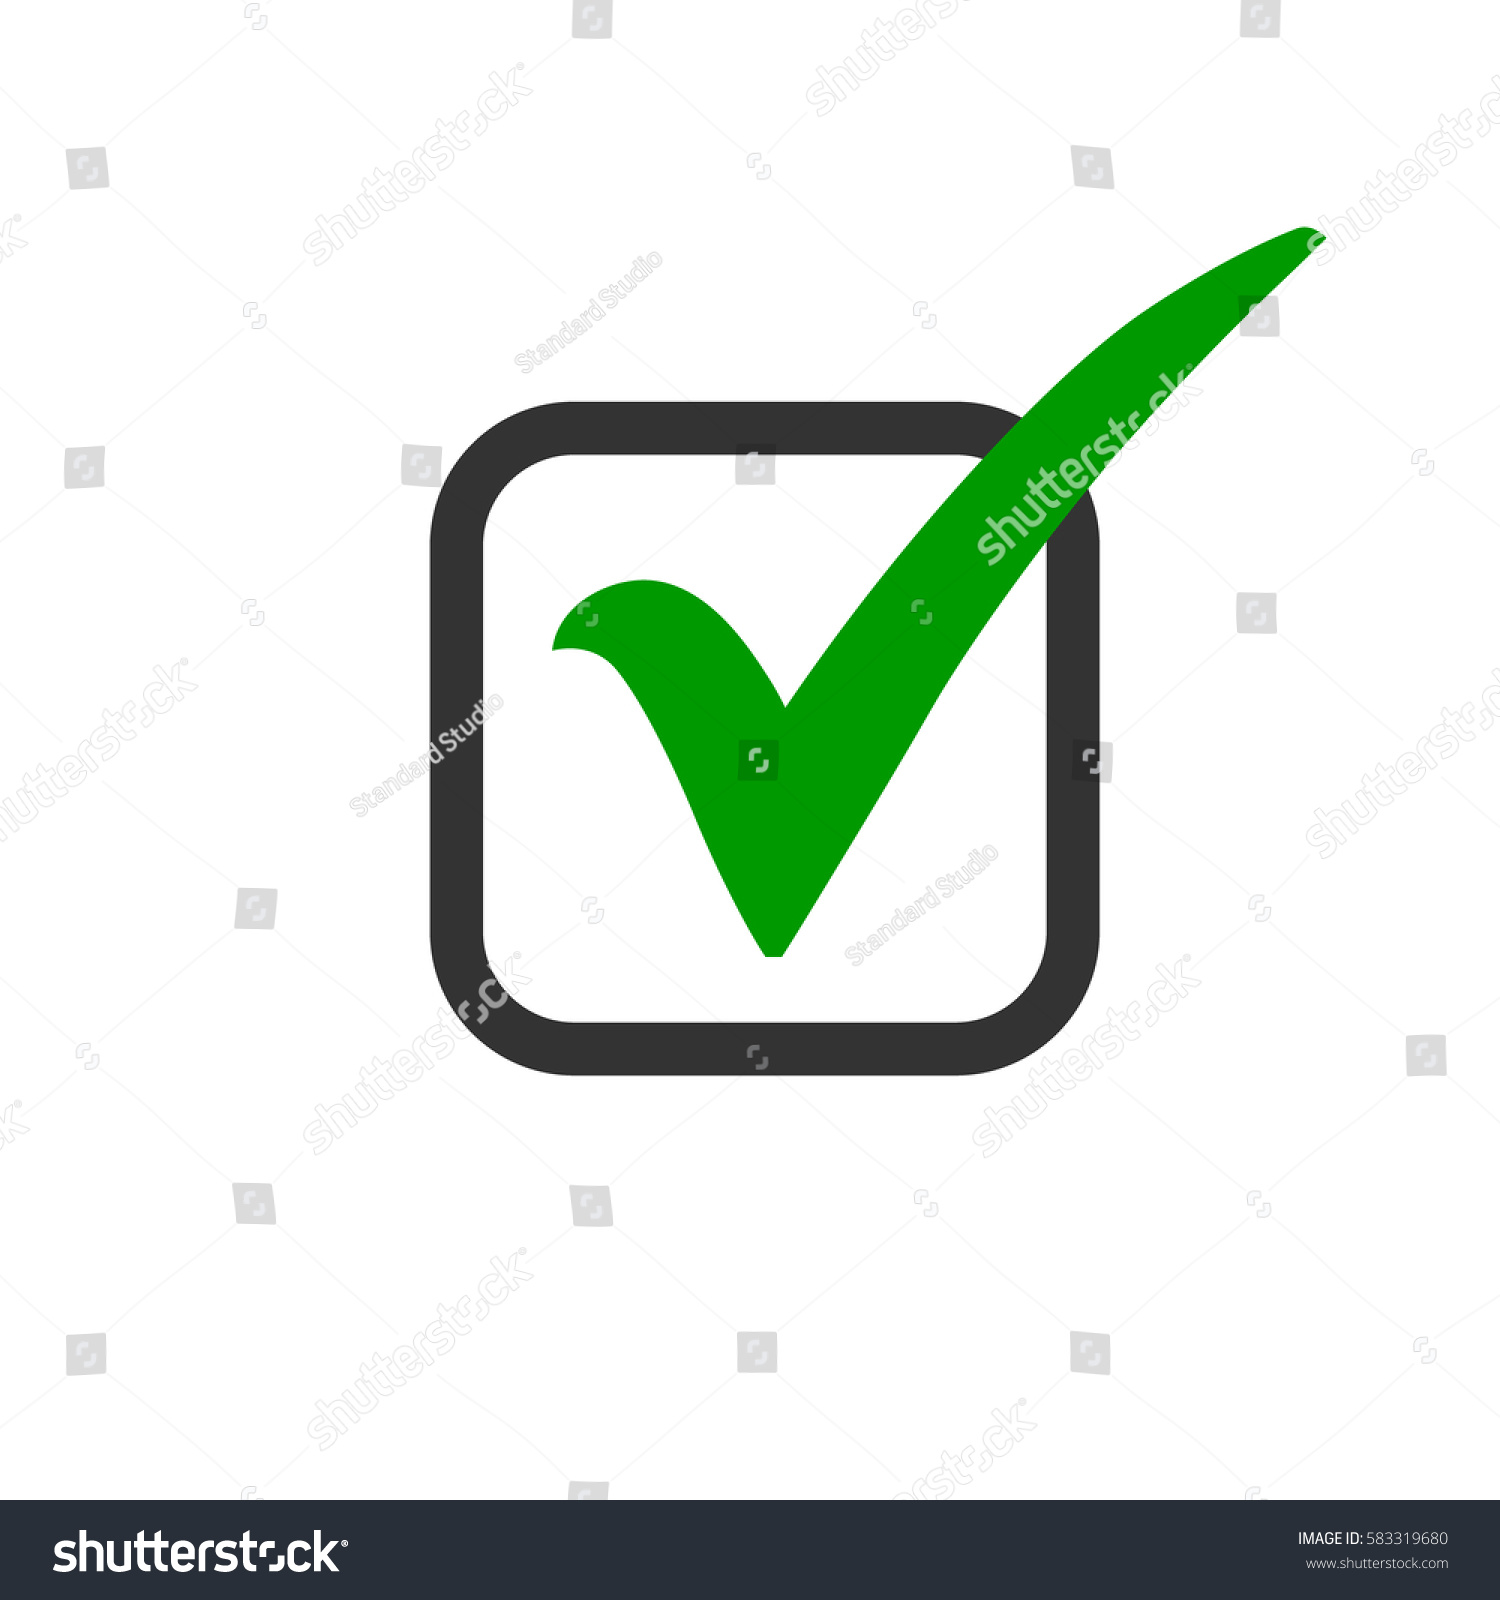 Green check mark icon box tick stock vector 583319680 shutterstock green check mark icon in a box tick symbol in green color vector illustration biocorpaavc Image collections